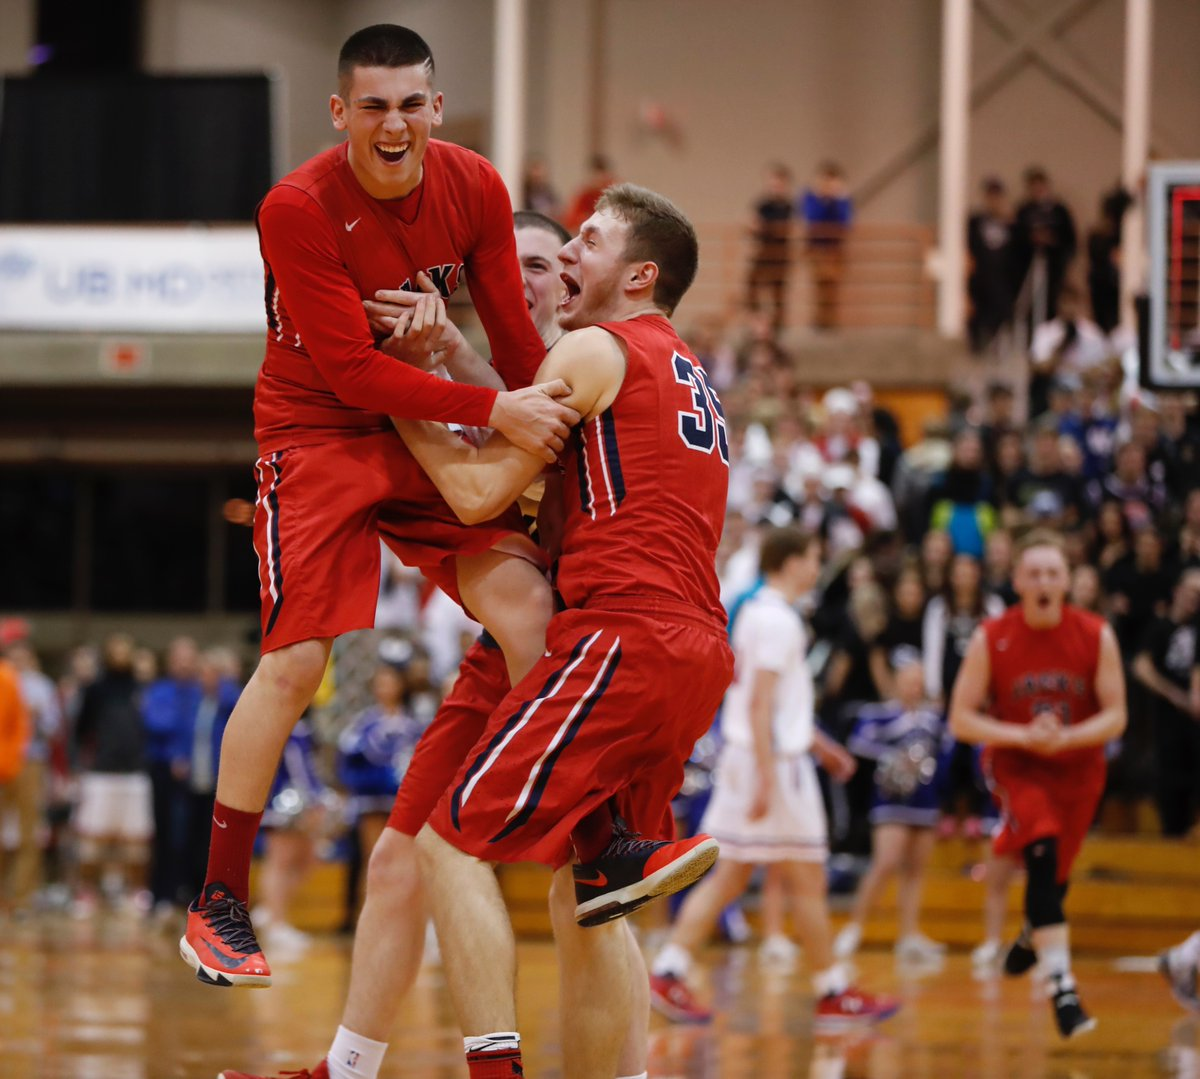 North Tonawanda players celebrate after winning the school's first Section VI title since 1961. (Harry Scull Jr./Buffalo News)